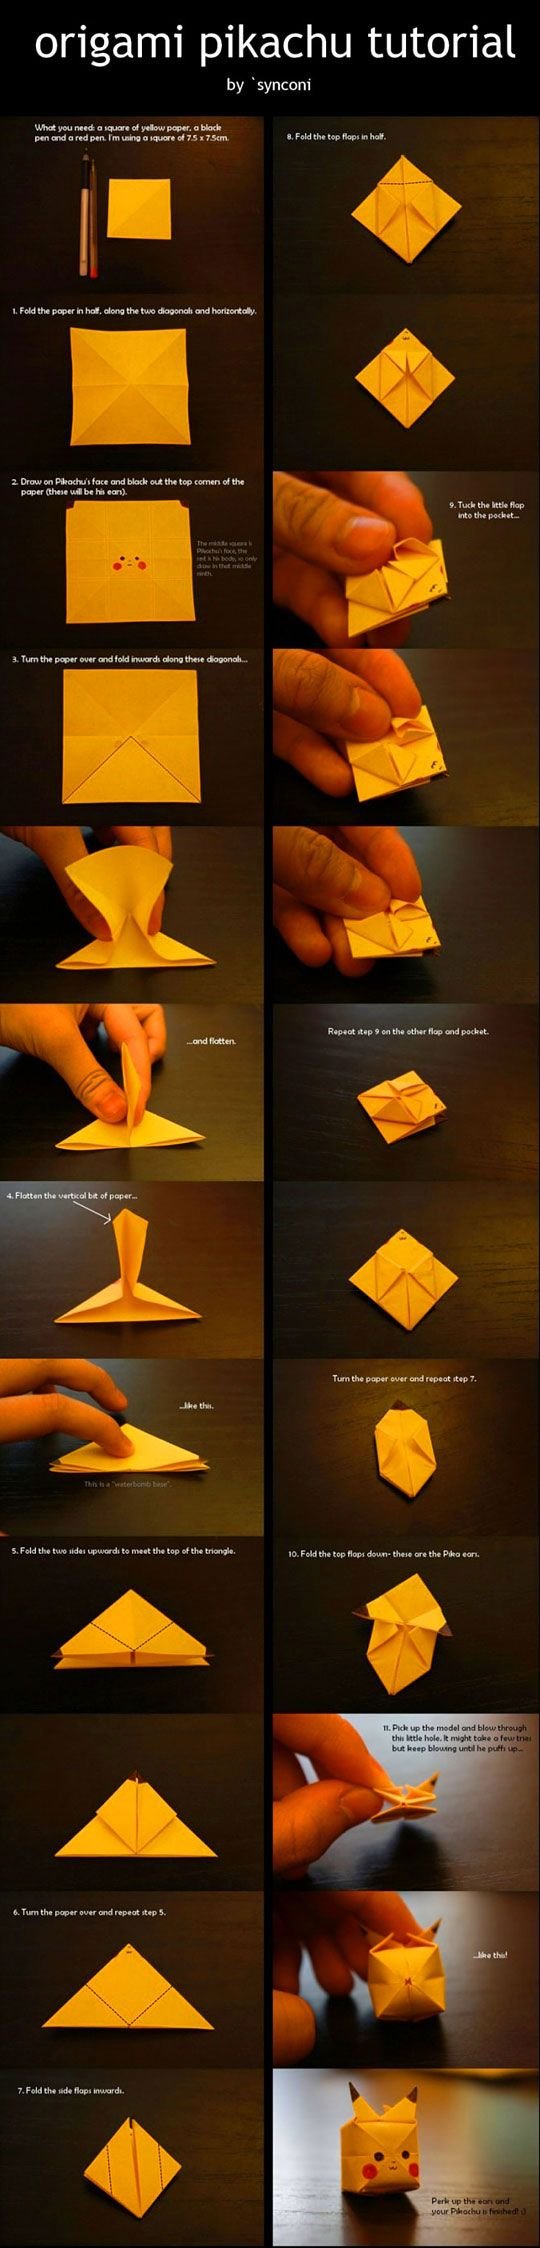 Origami Pikachu. | Geeky Things | Pinterest | Pikachu ... Pokemon Pikachu